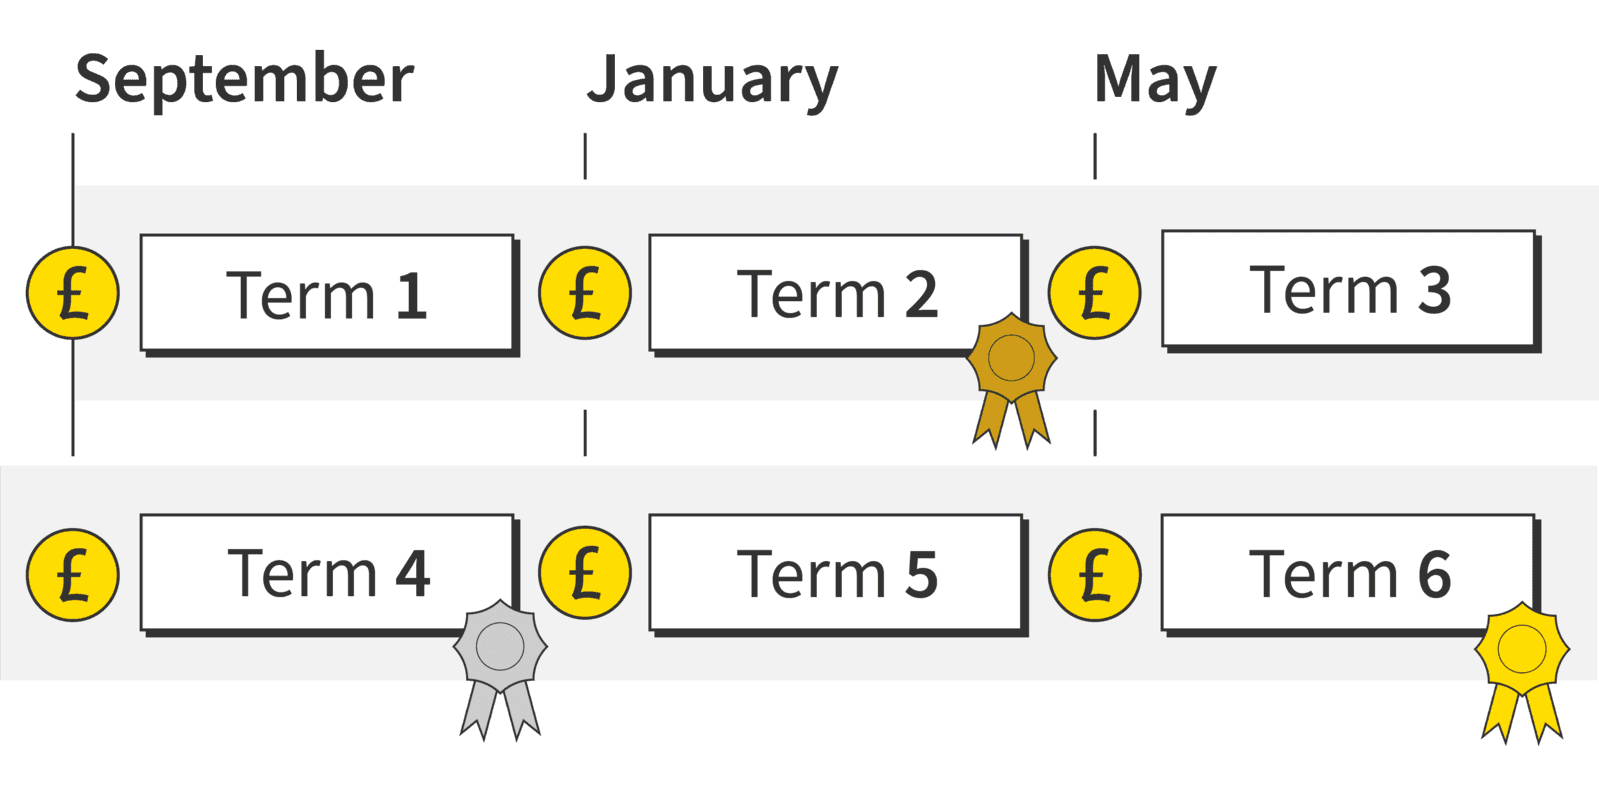 Infographic summarising the example payment schedule described above.